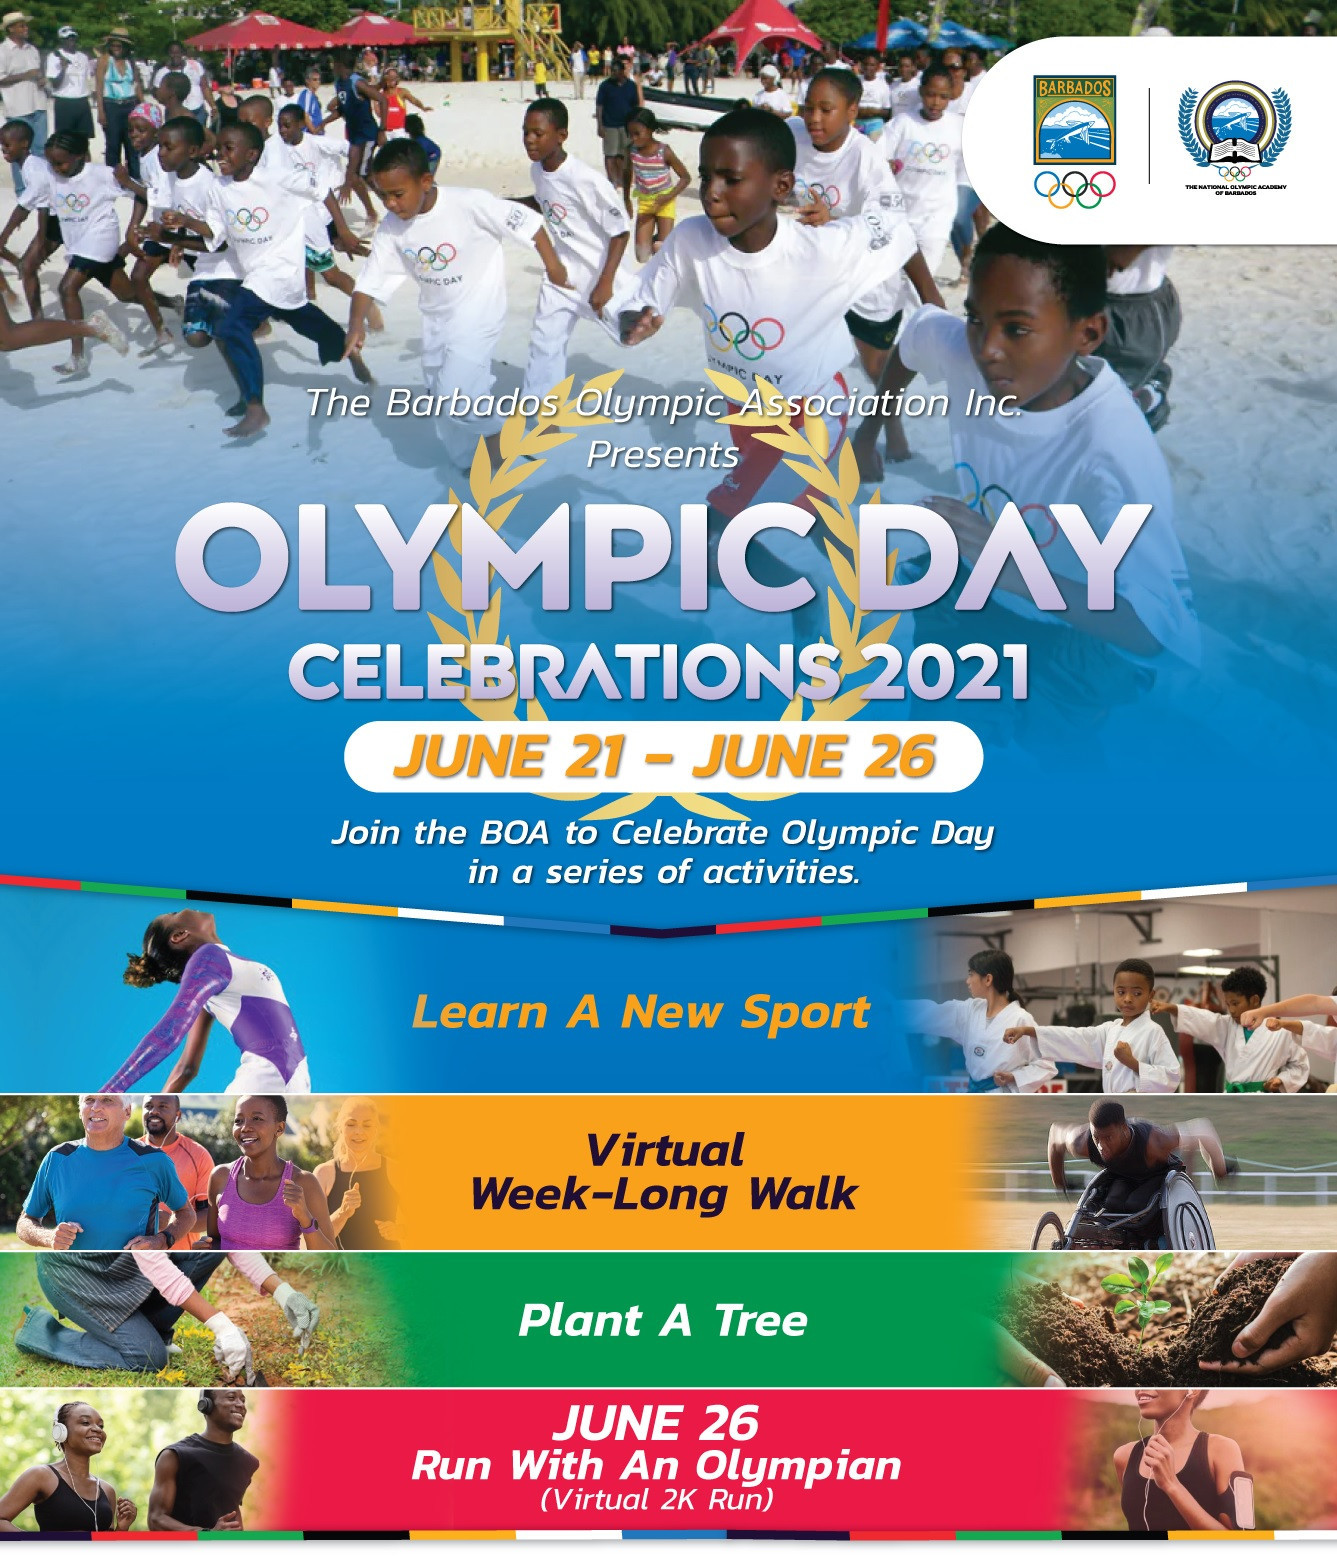 Barbados Olympic Association announces details of week of activities as part of Olympic Day celebrations